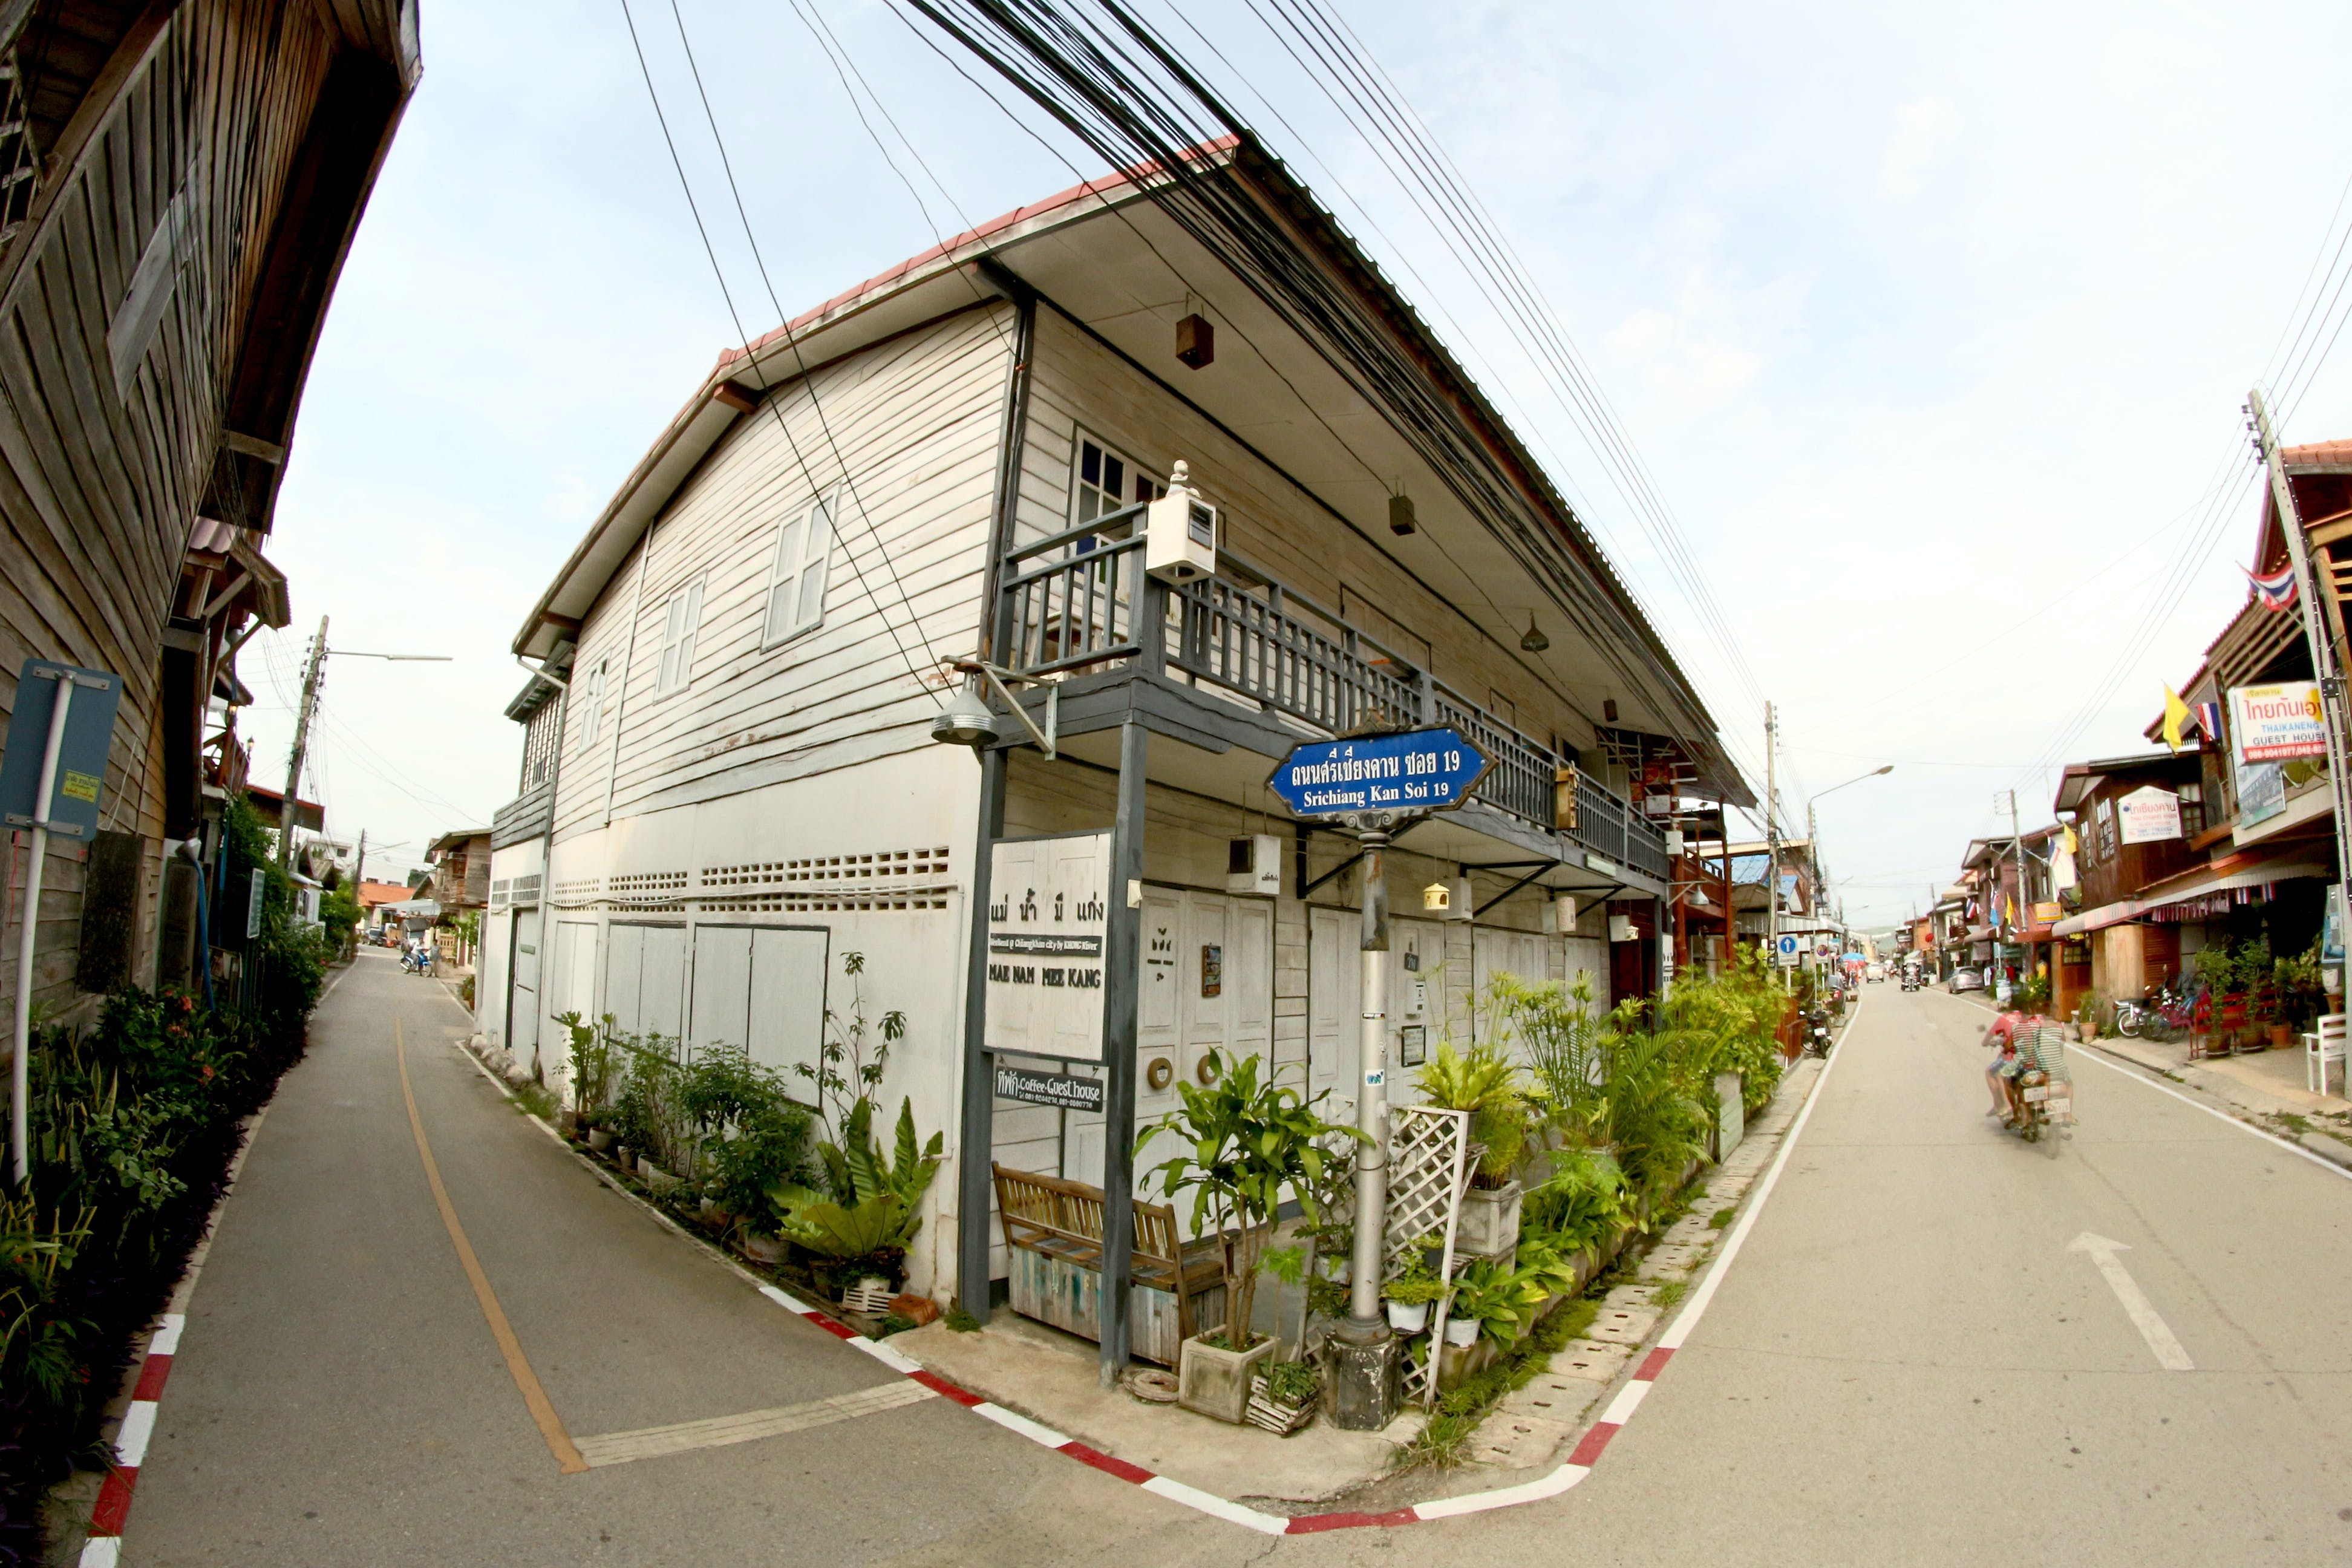 Fish-eye Lens Photography of Crossroad